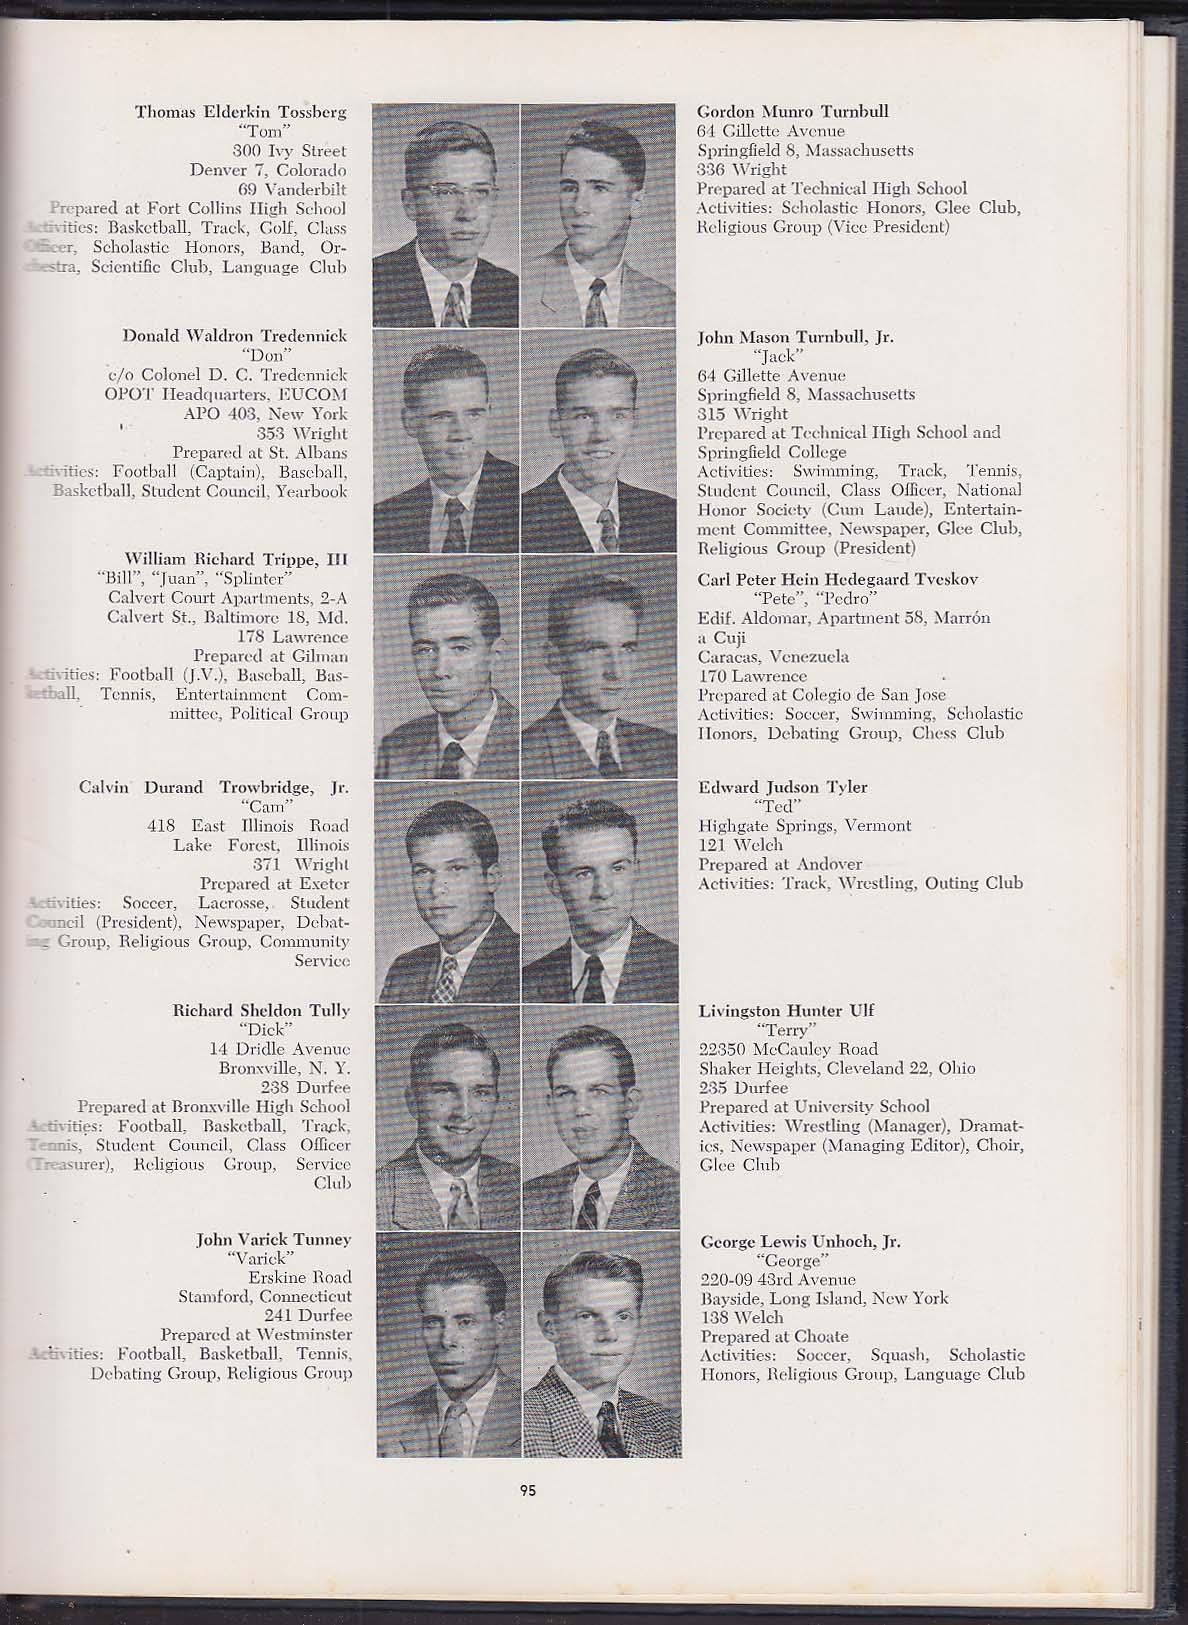 The Old Campus Class of 1956 Yale University James Jeffords John Tunney